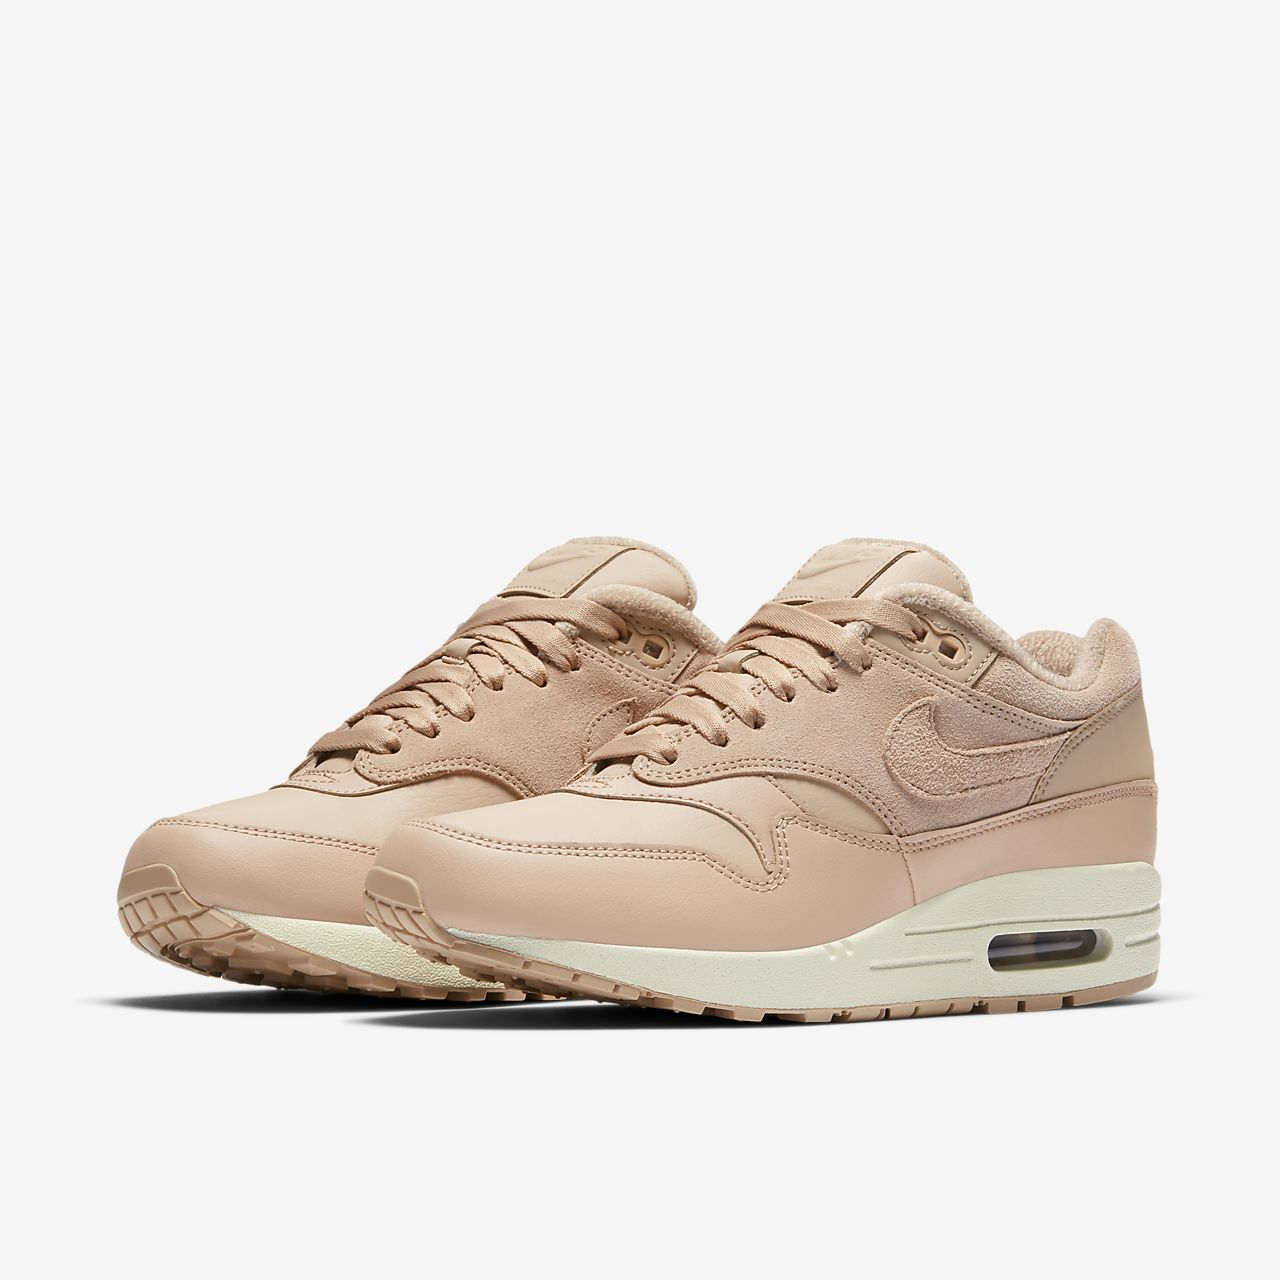 separation shoes 9324b 8f2b8 ... Nike Air Max 1 Premium Winterized Women s Shoe